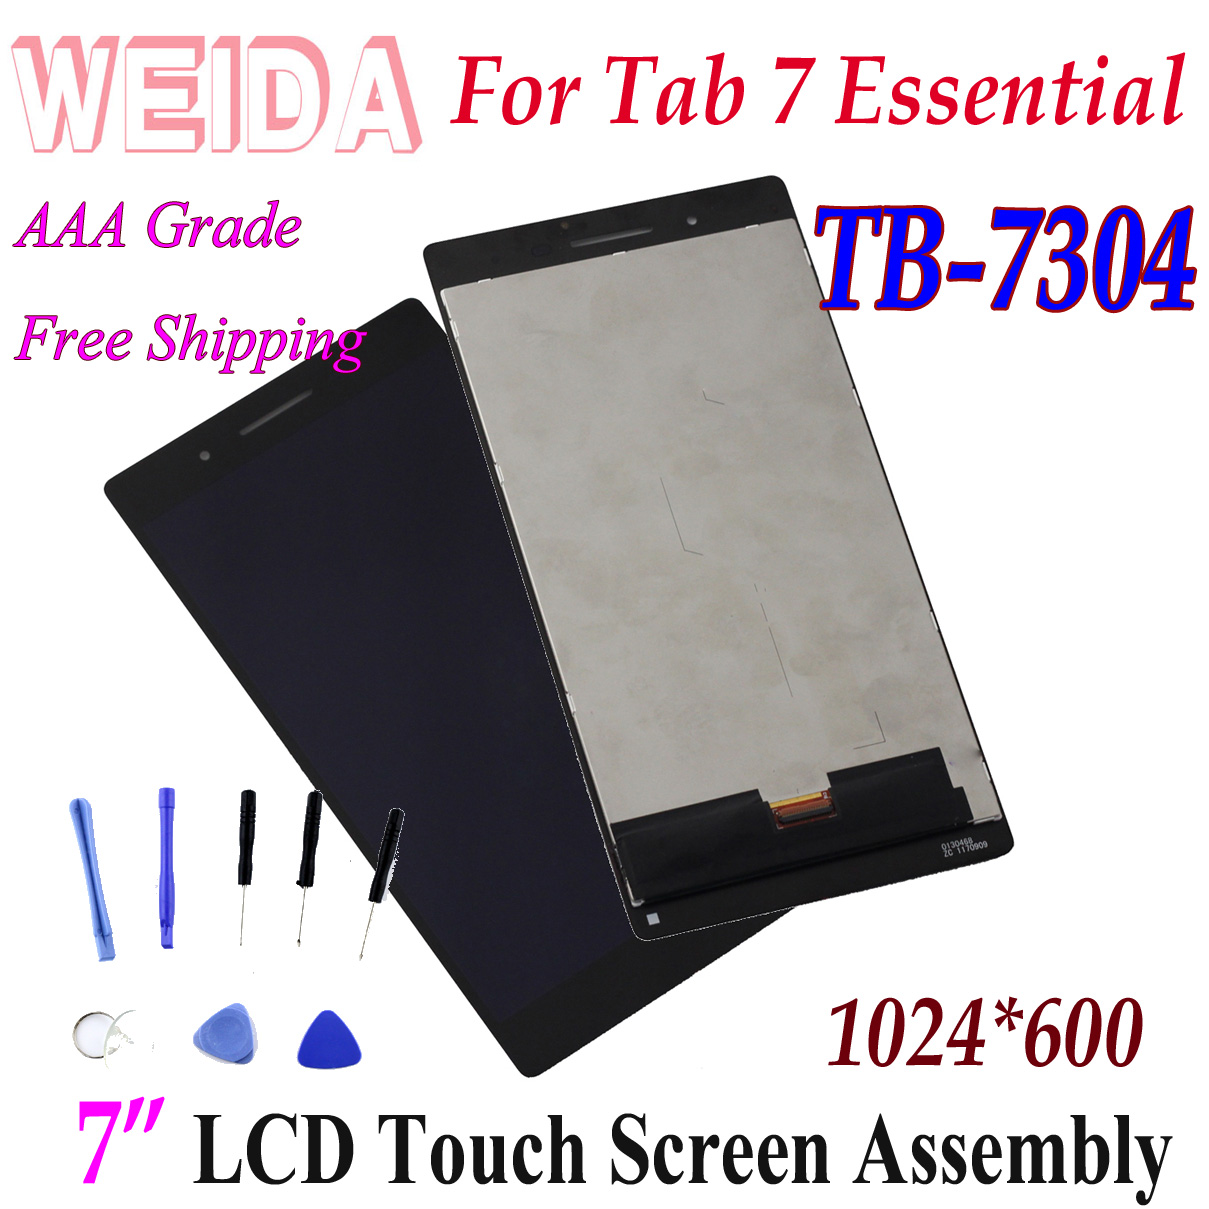 WEIDA LCD Replacement 7